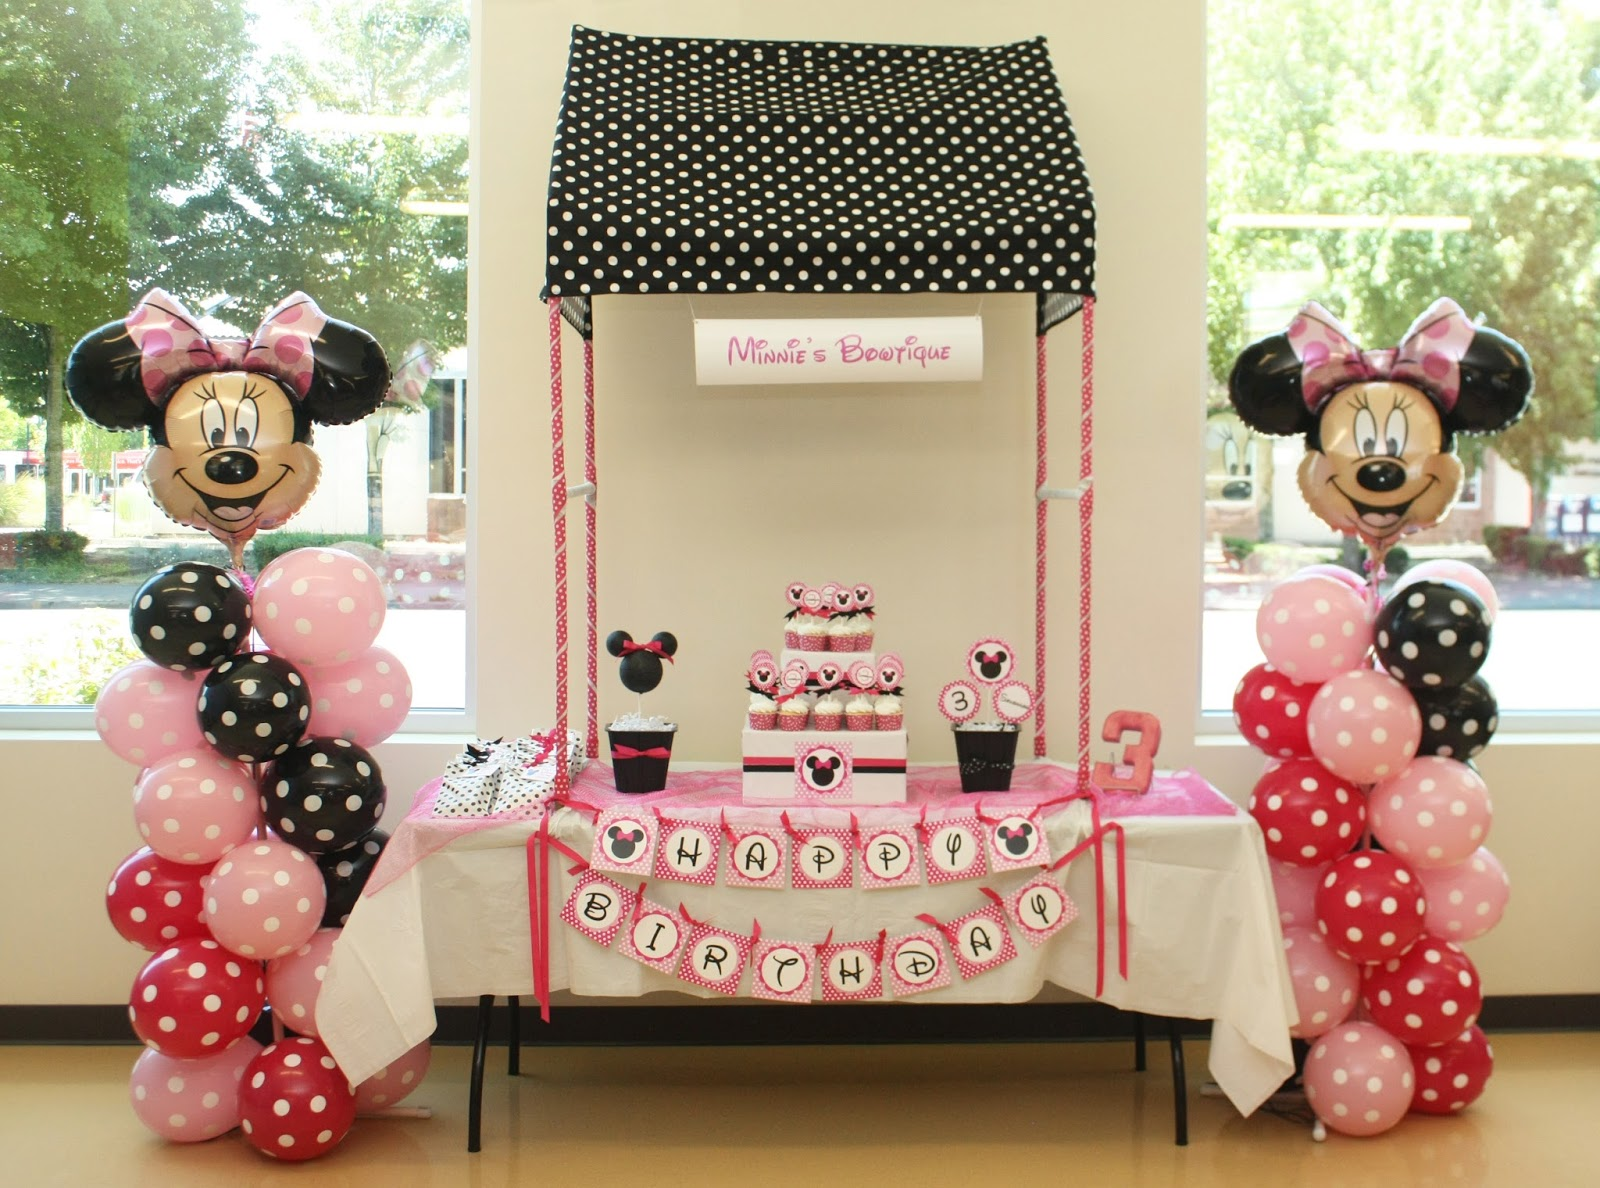 Minnies Bowtique Inspired Birthday Party